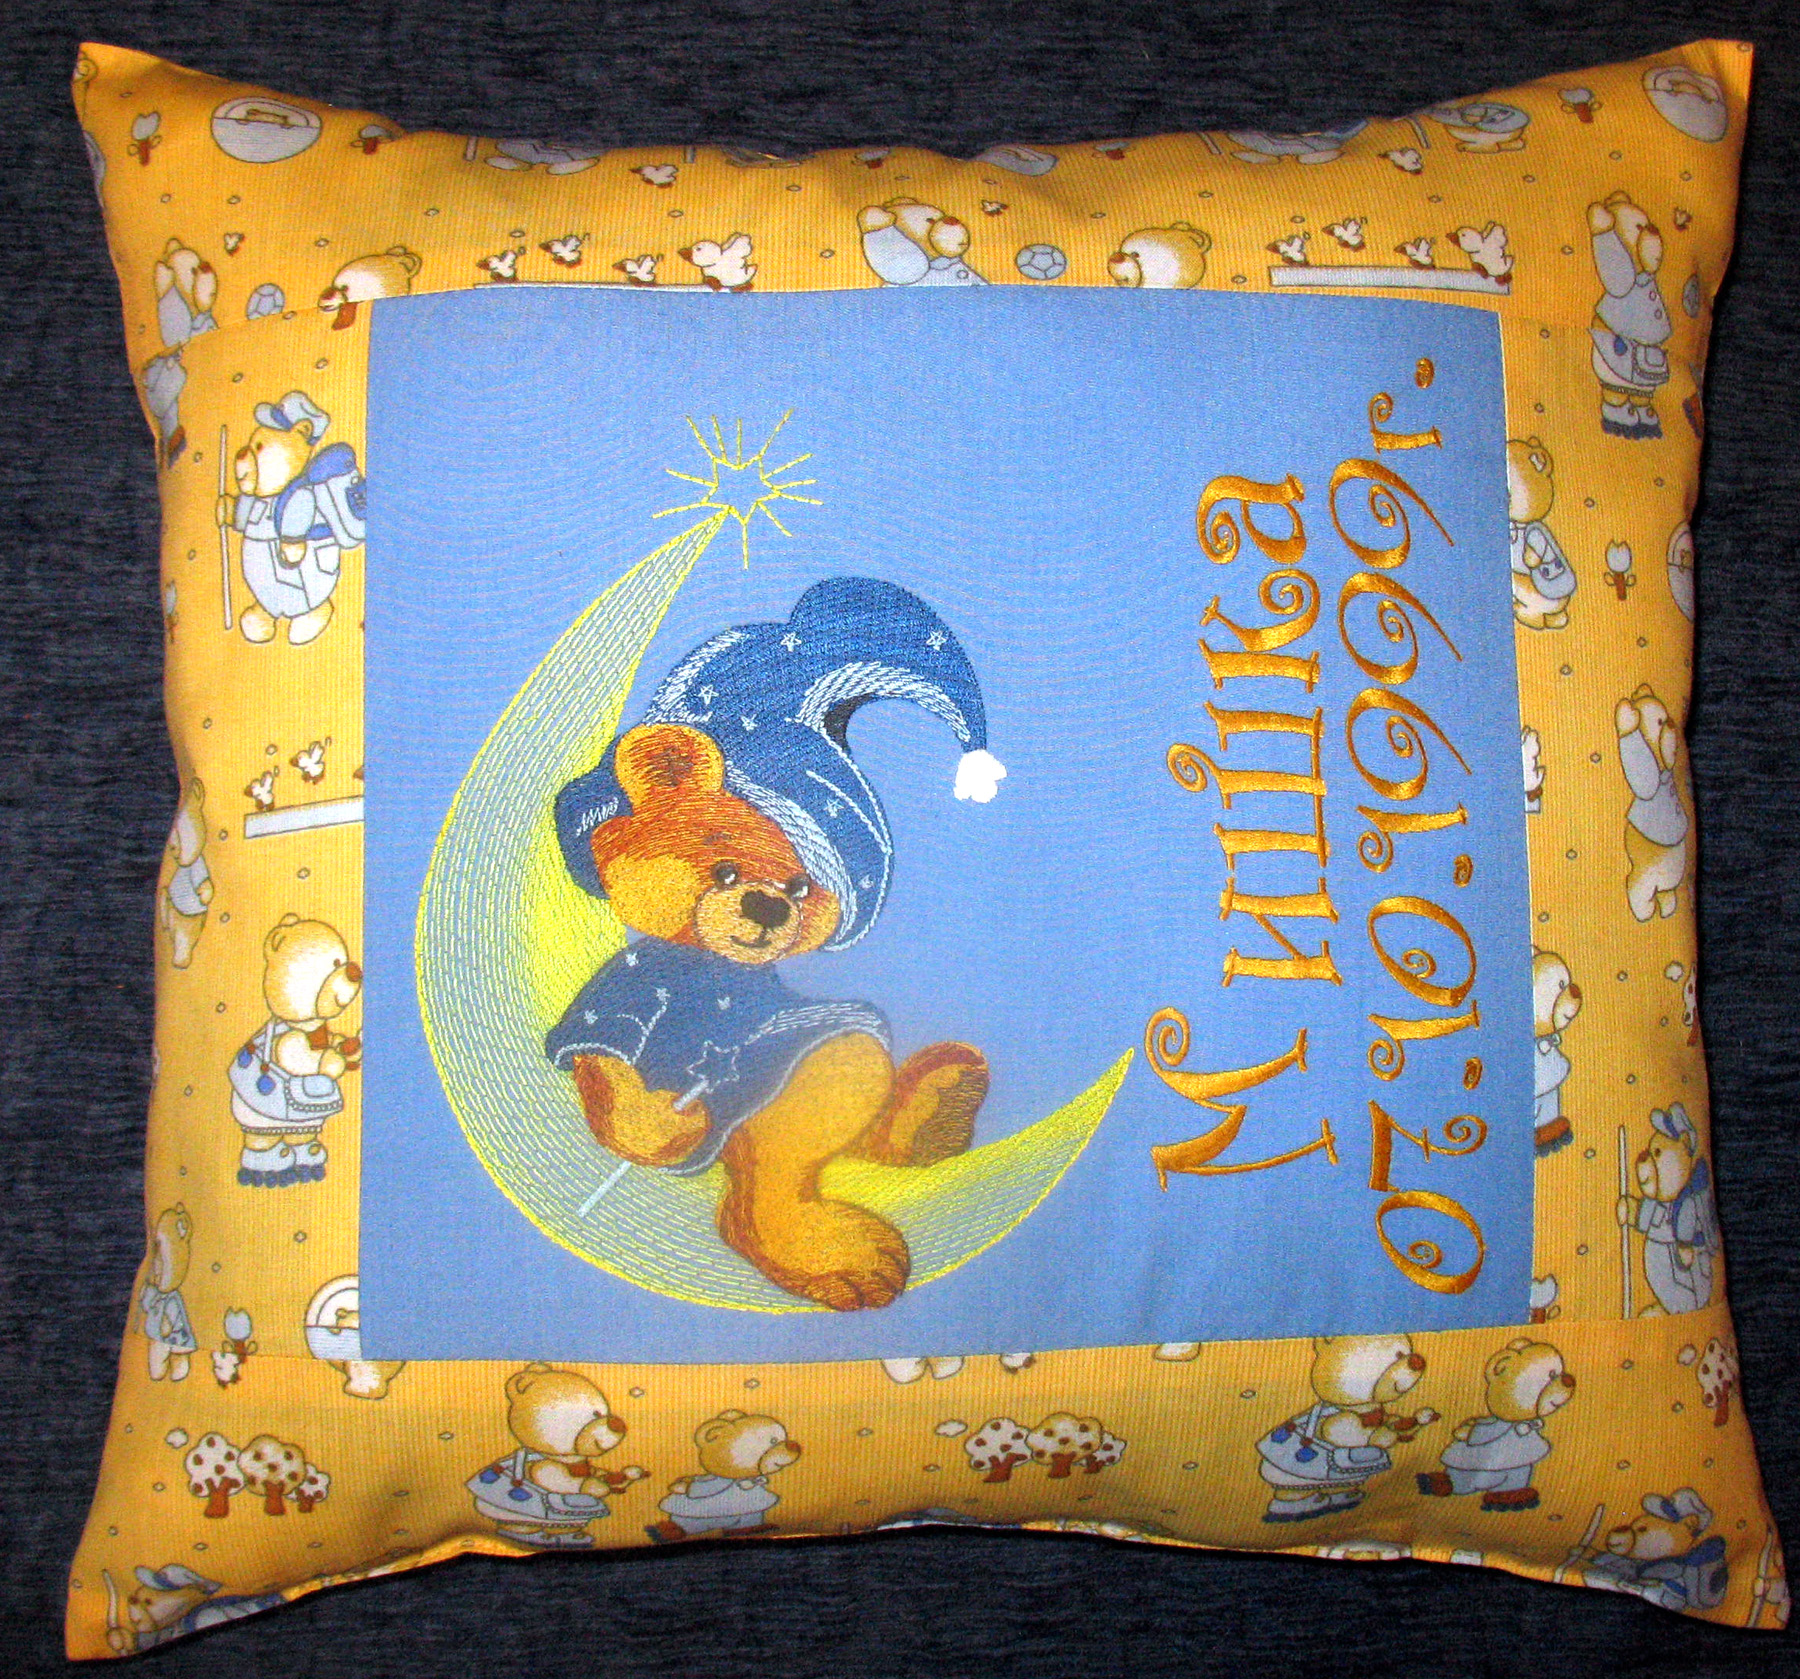 Embroidered pillowcase with Teddy Bear Wizard